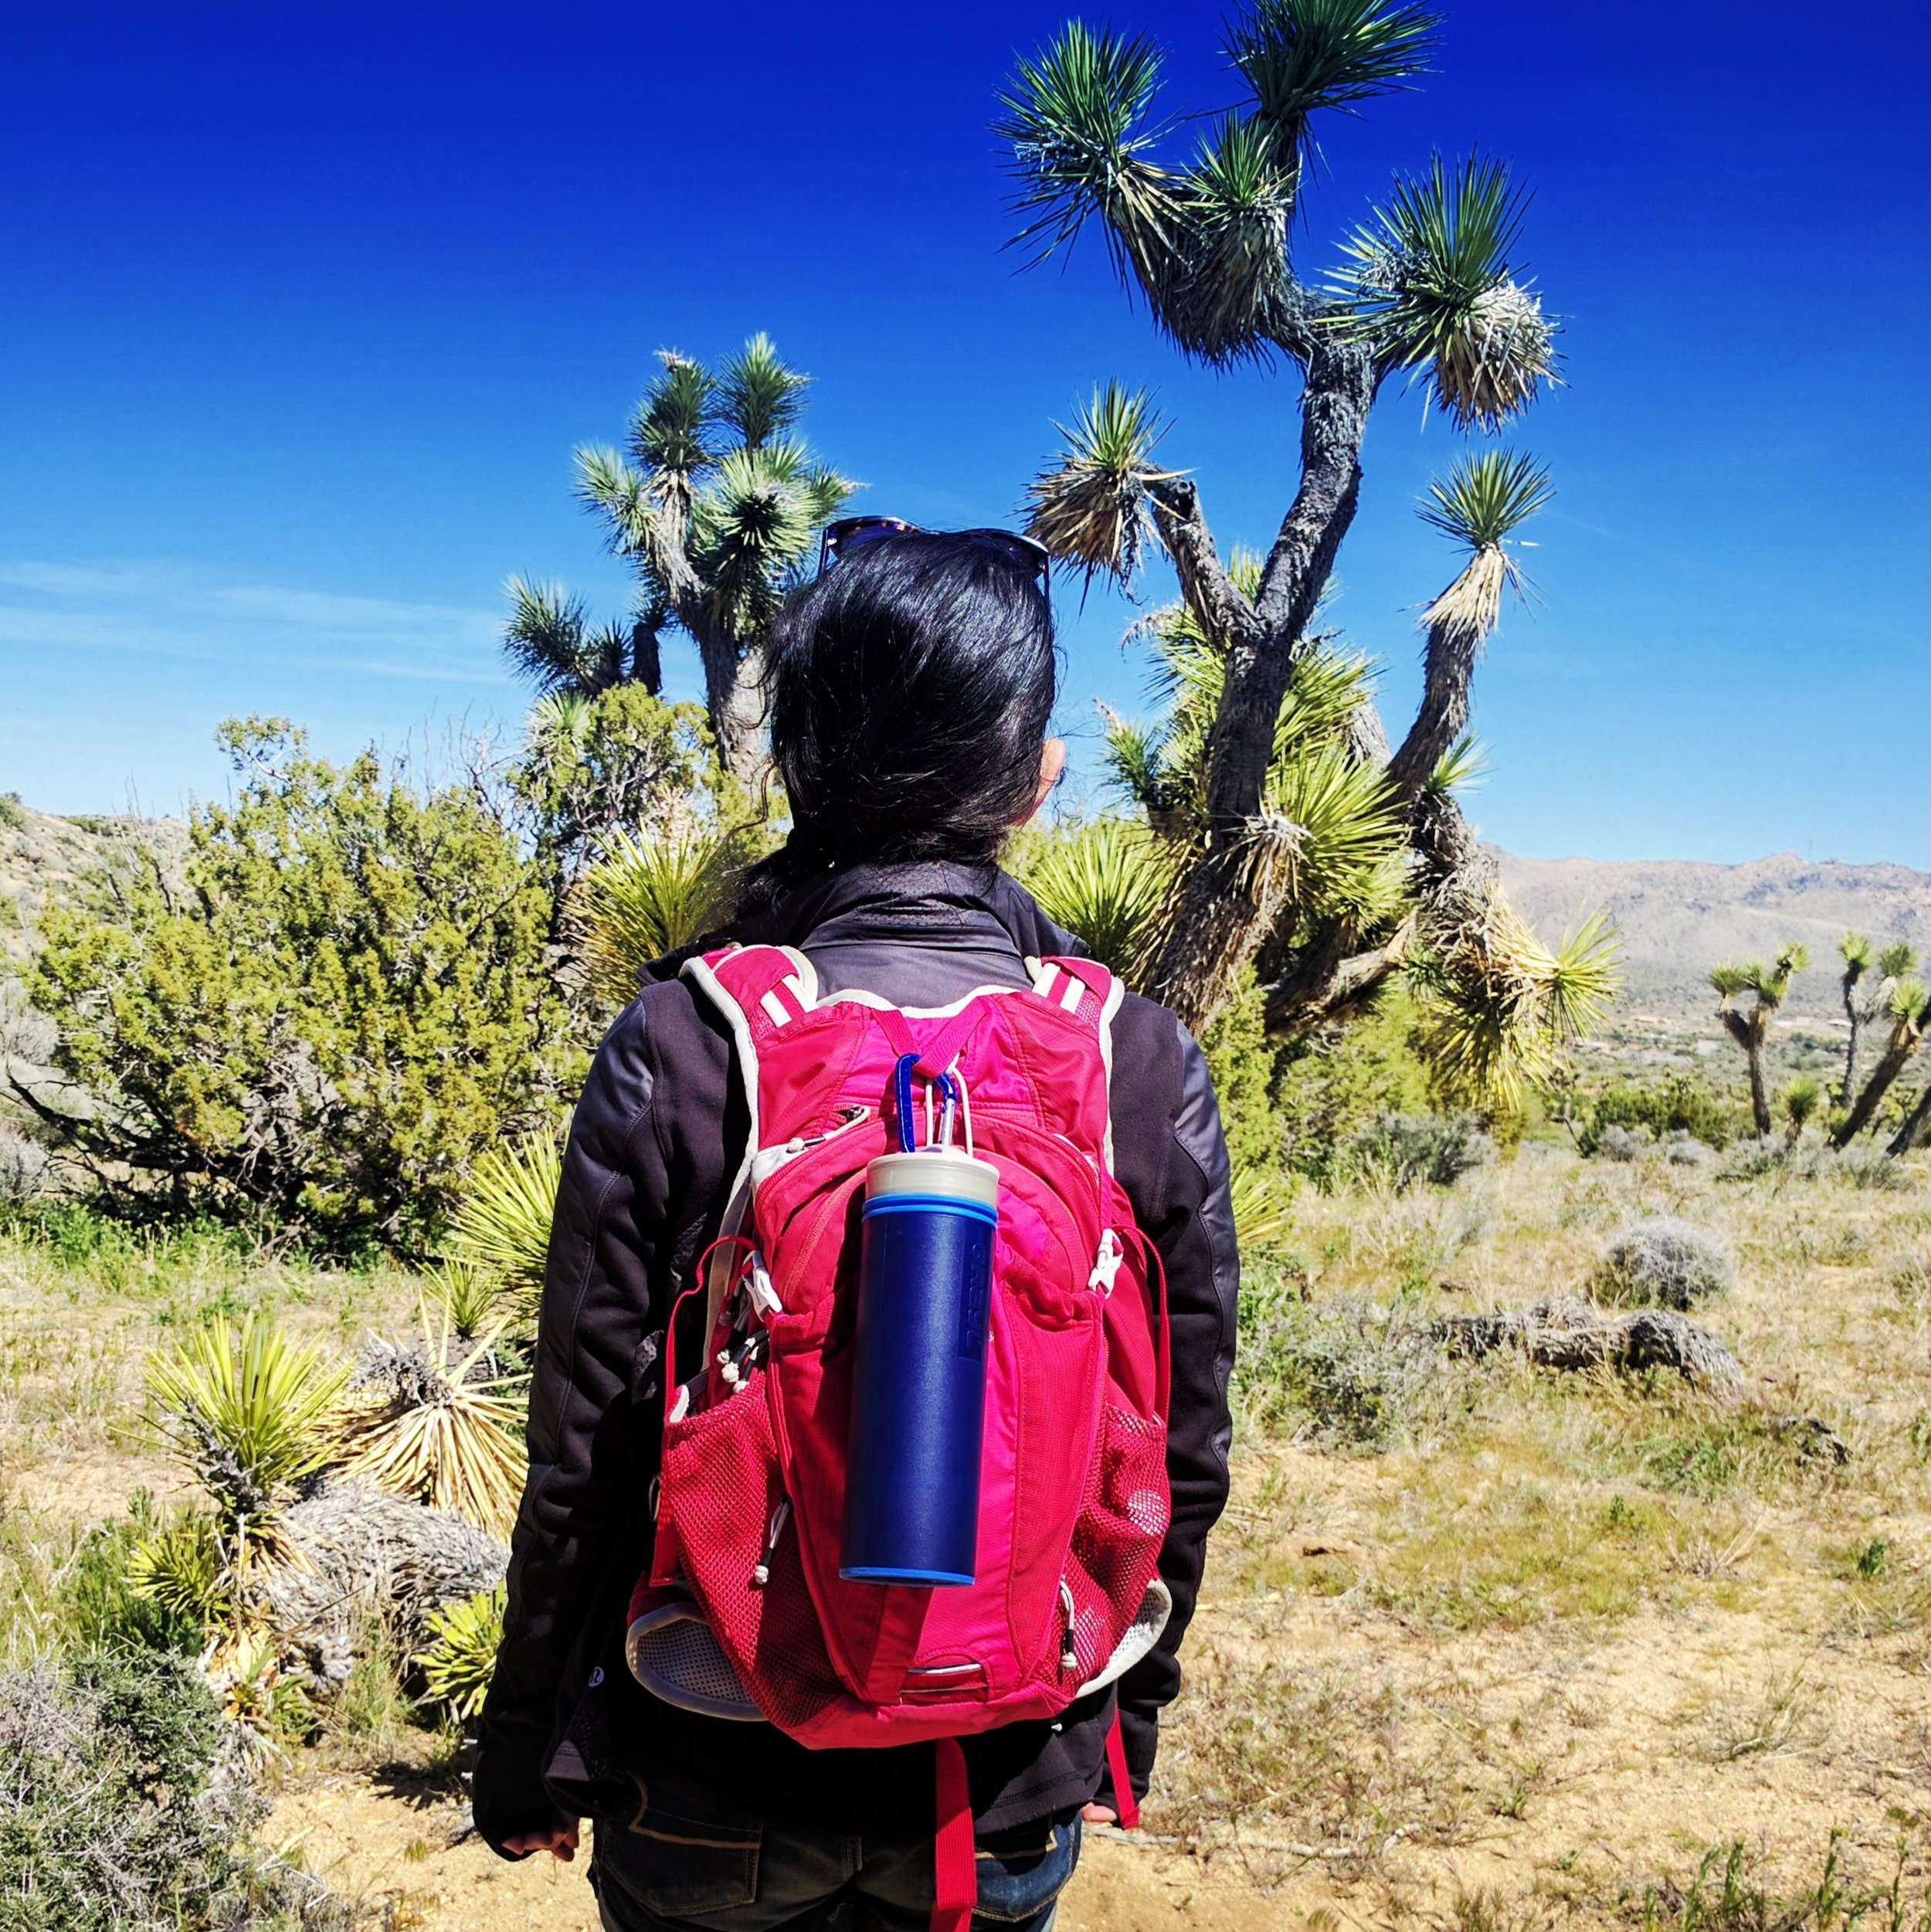 At Joshua Tree with my favorite water bottle the Grayl Filter Bottle